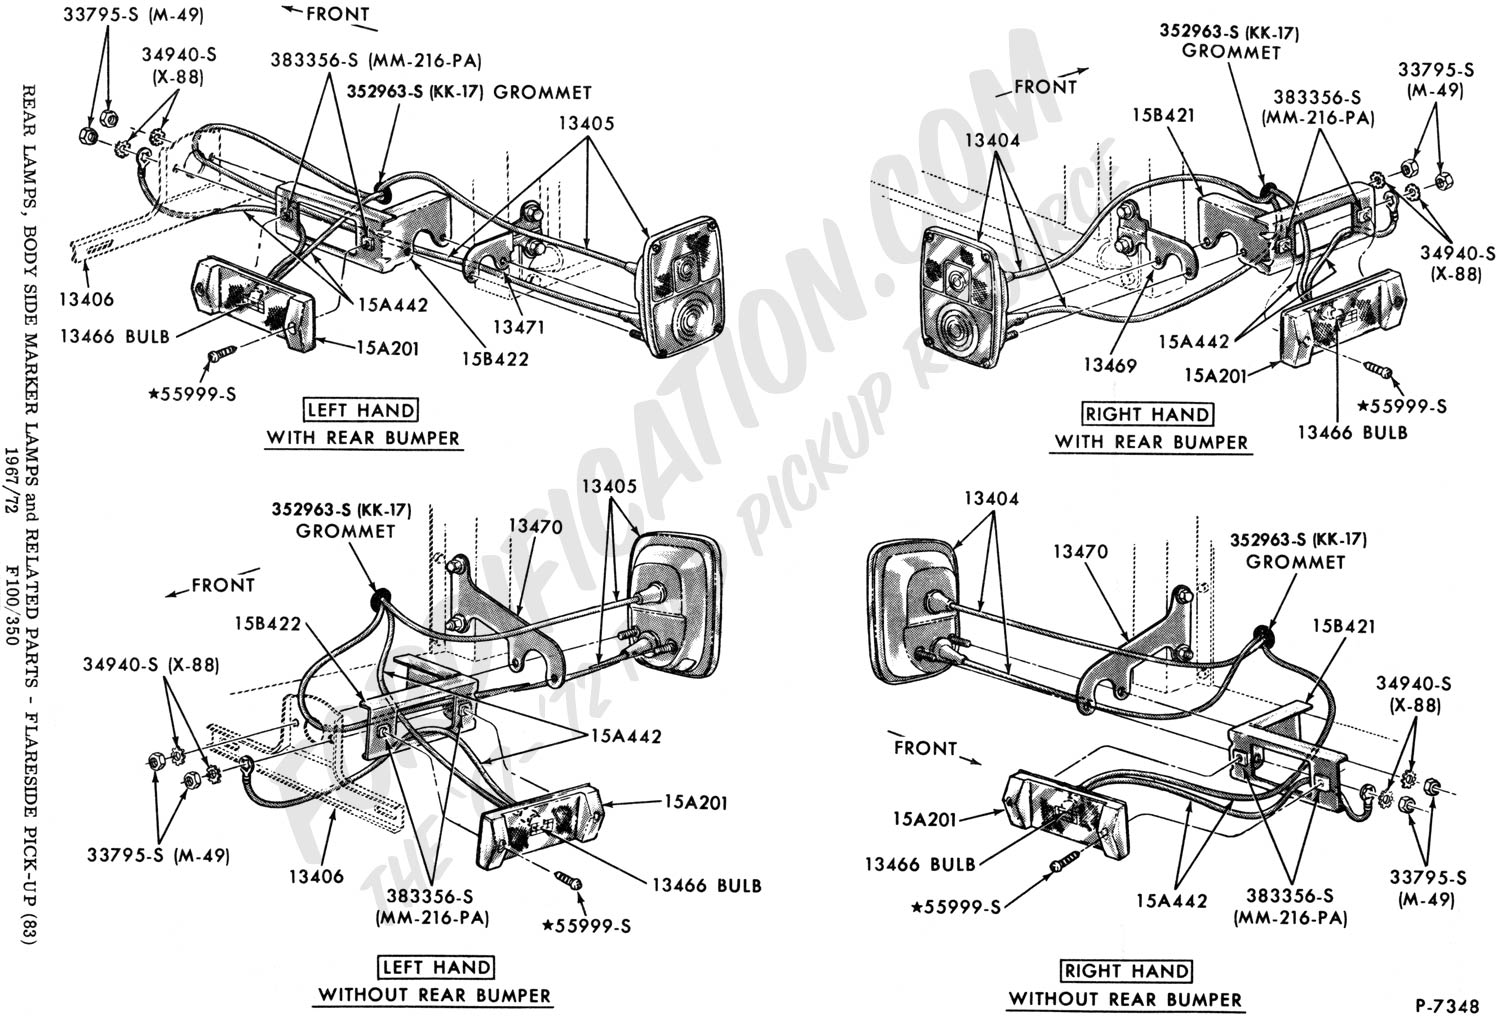 Ford Truck Technical Drawings And Schematics Section I 1977 Camaro Engine Wiring Diagram Rear Body Taillight Electrical